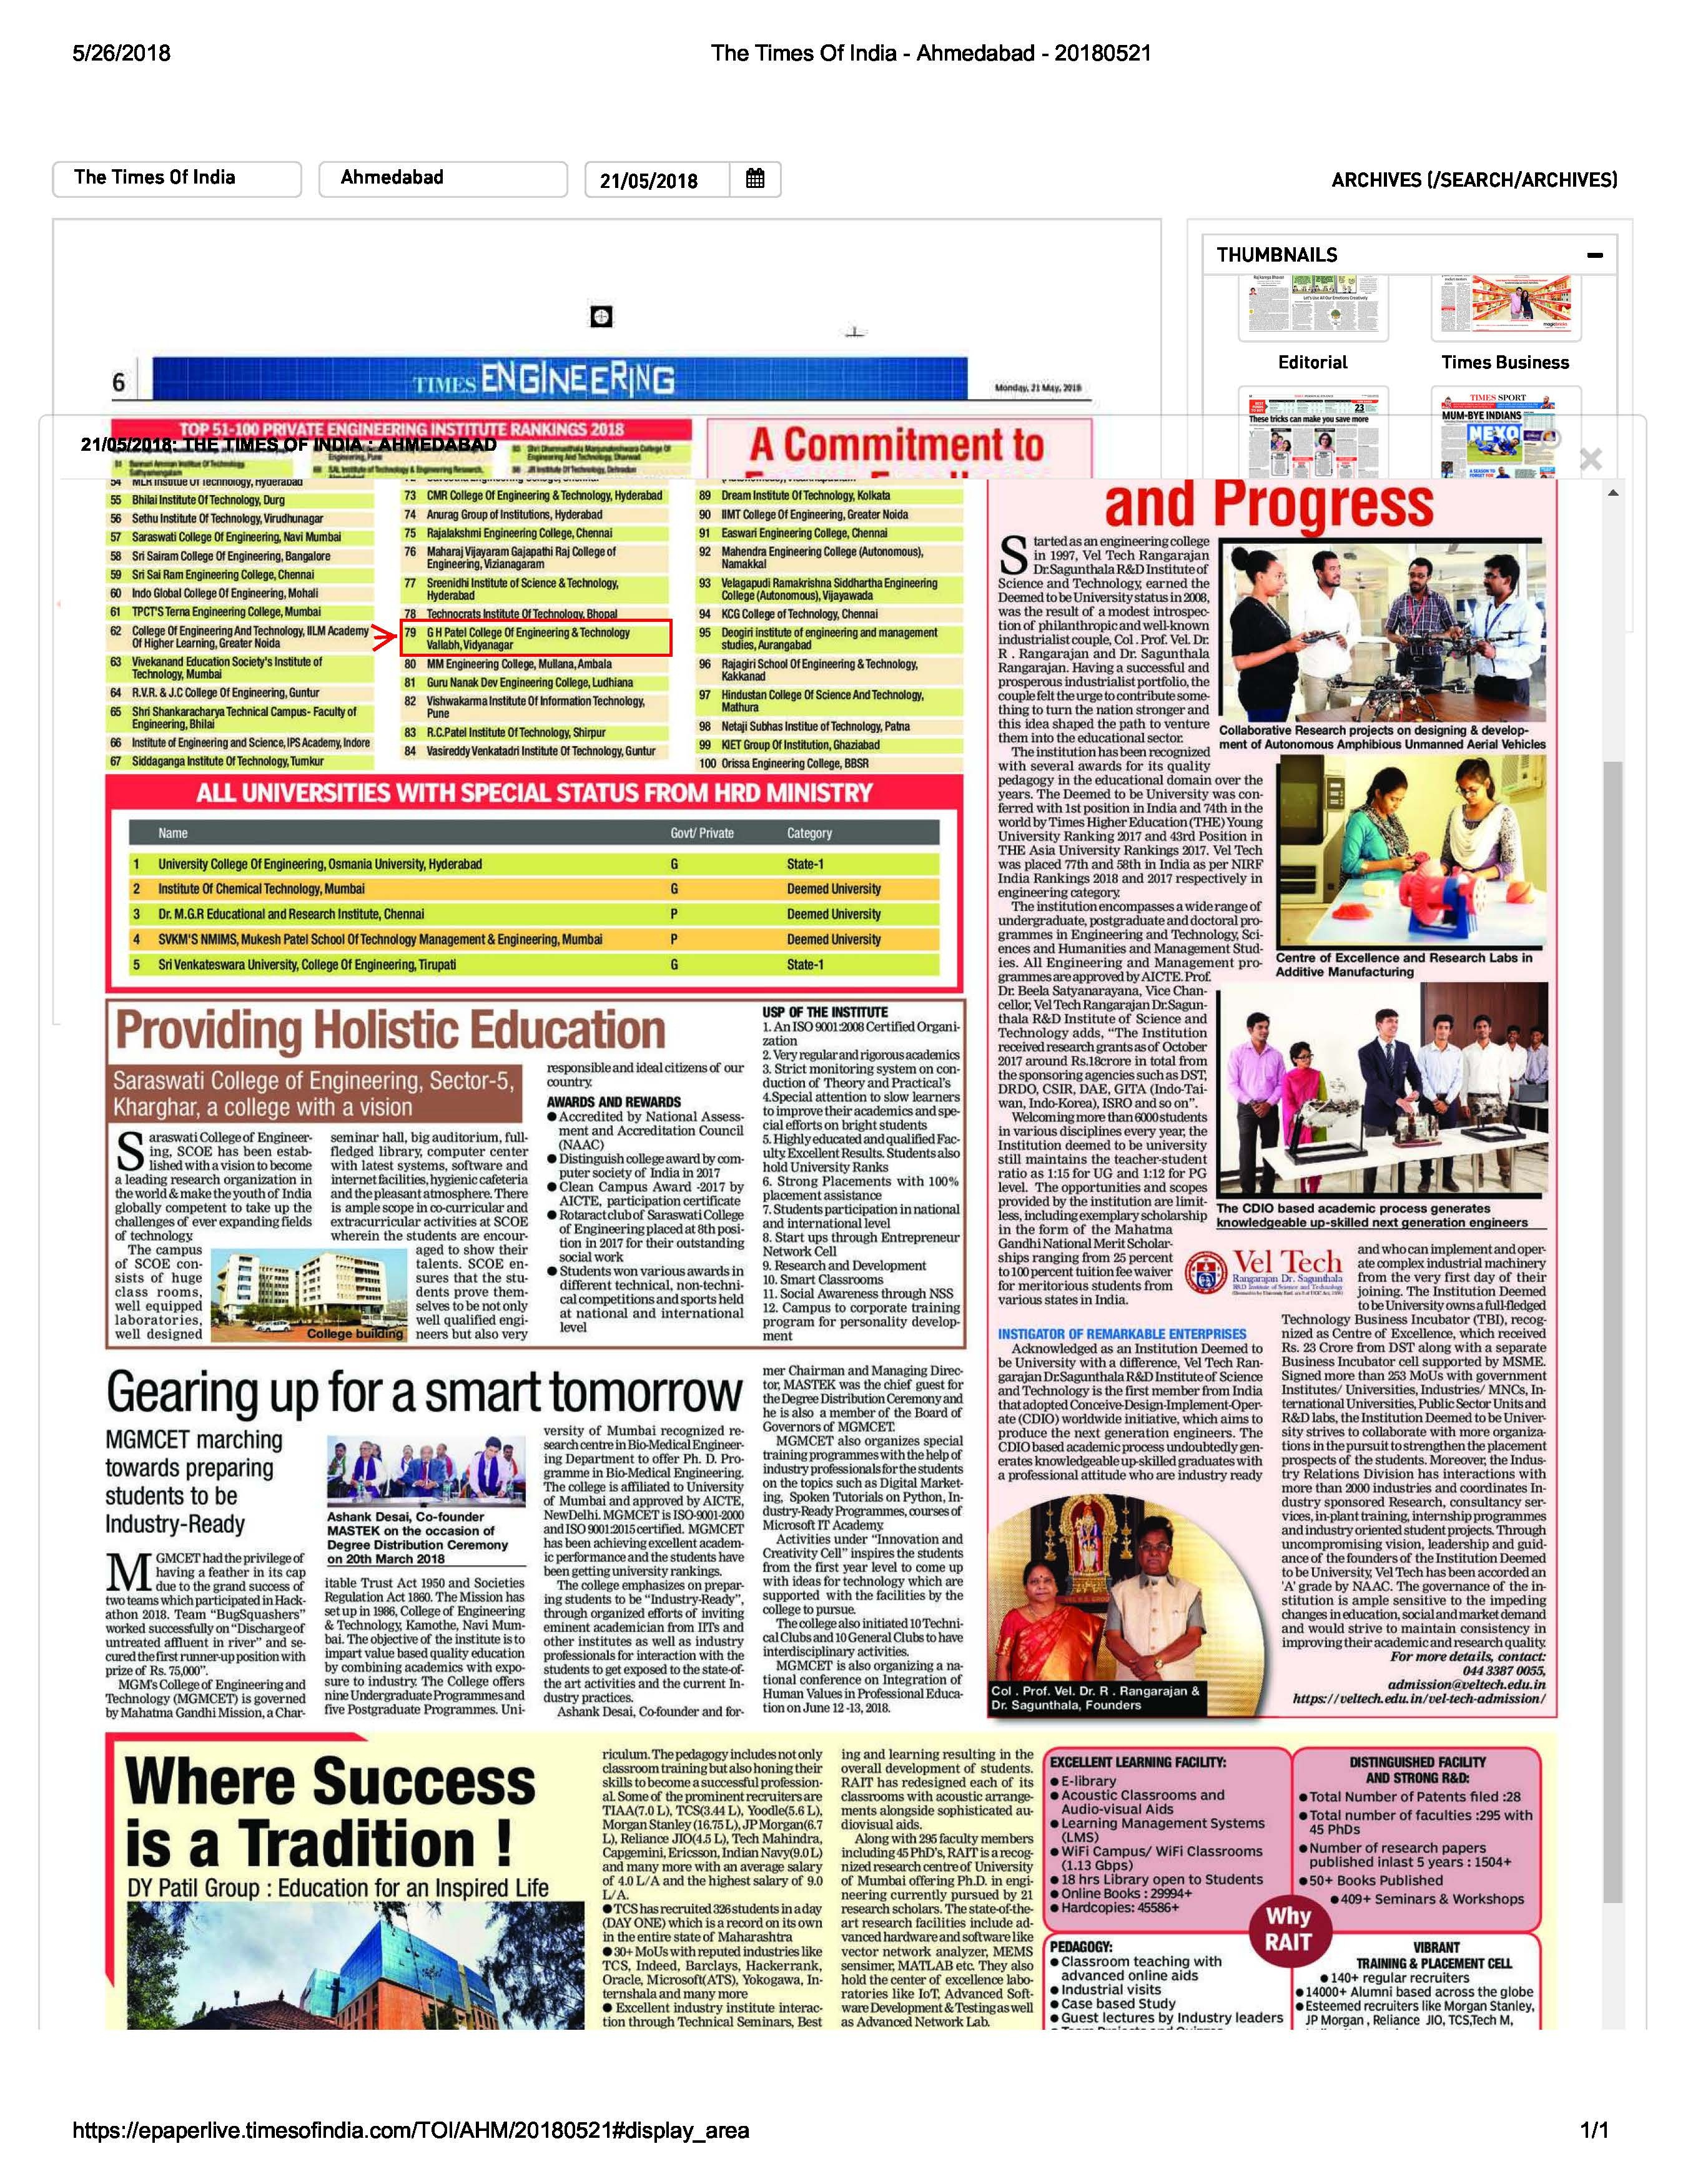 2018-05-21-79-the-times-of-india---ahmedabad---20180521-(copy).jpg